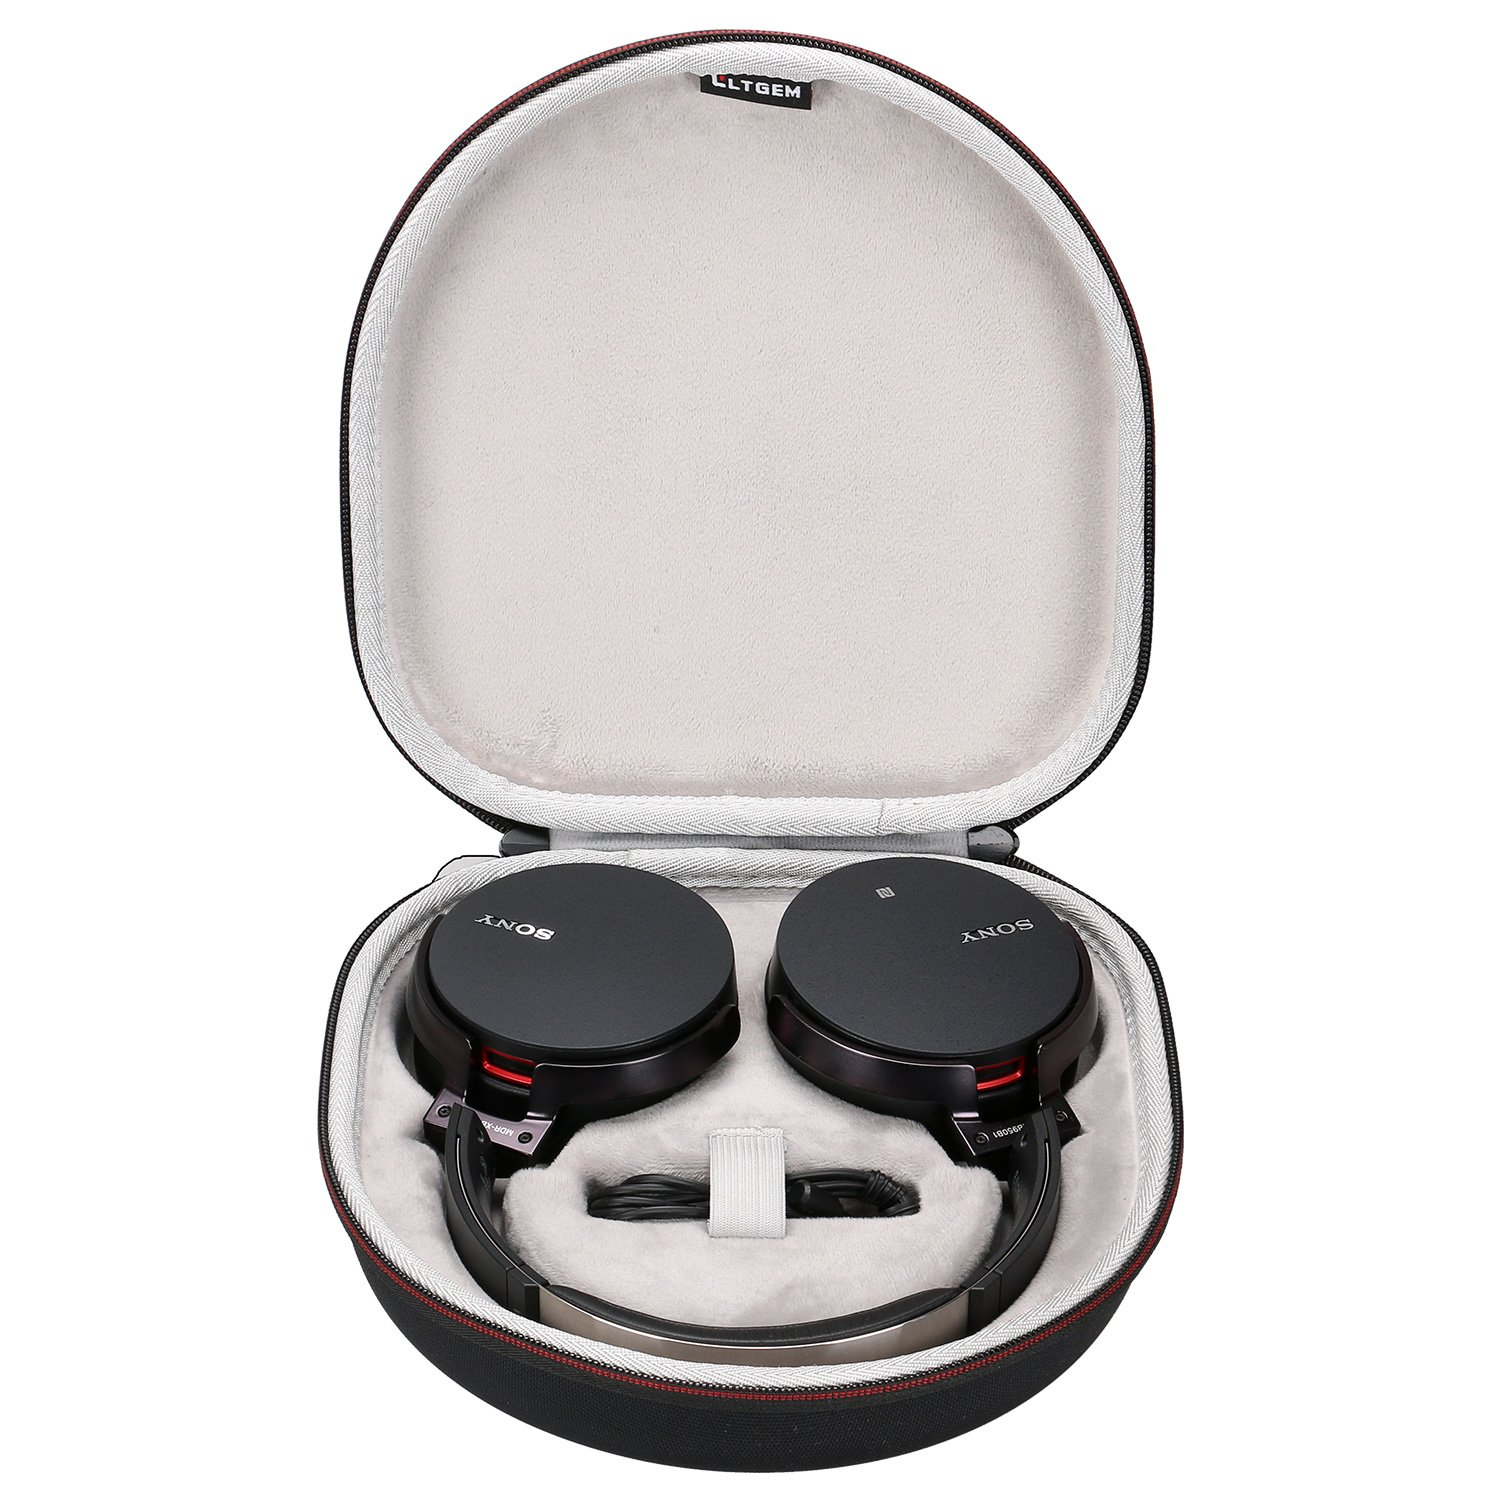 Ltgem Headphones Case For Sony Wh-Ch700n Or Xb950b1 Wireless Bluetooth Noise Cancelling Headphones